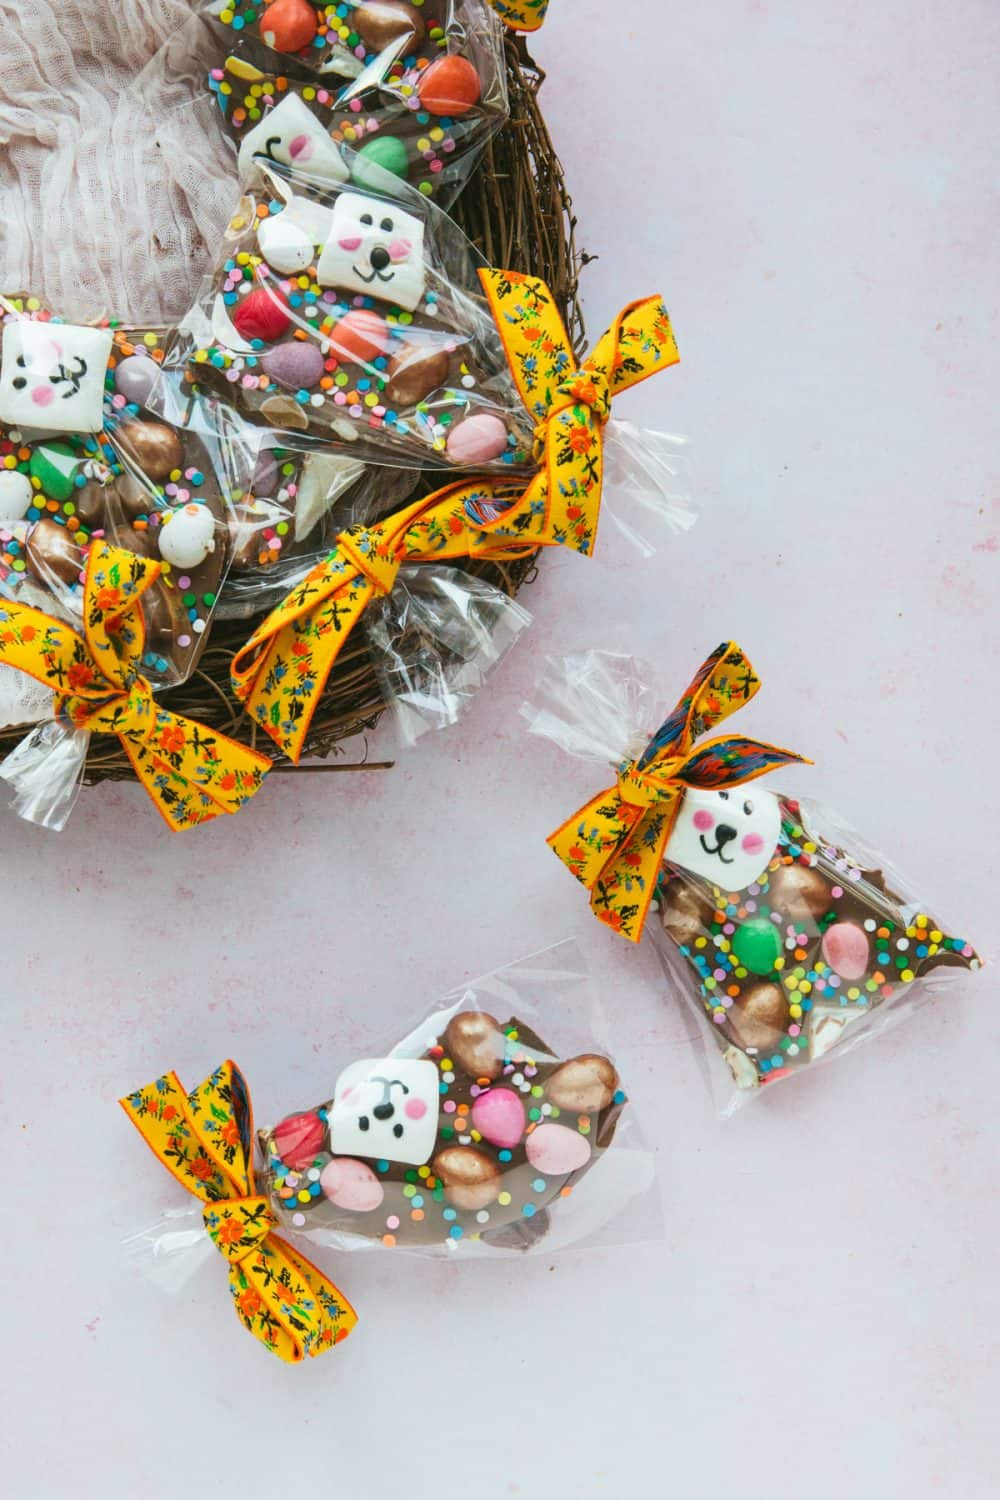 Cellophane bags containing chocolate bark.